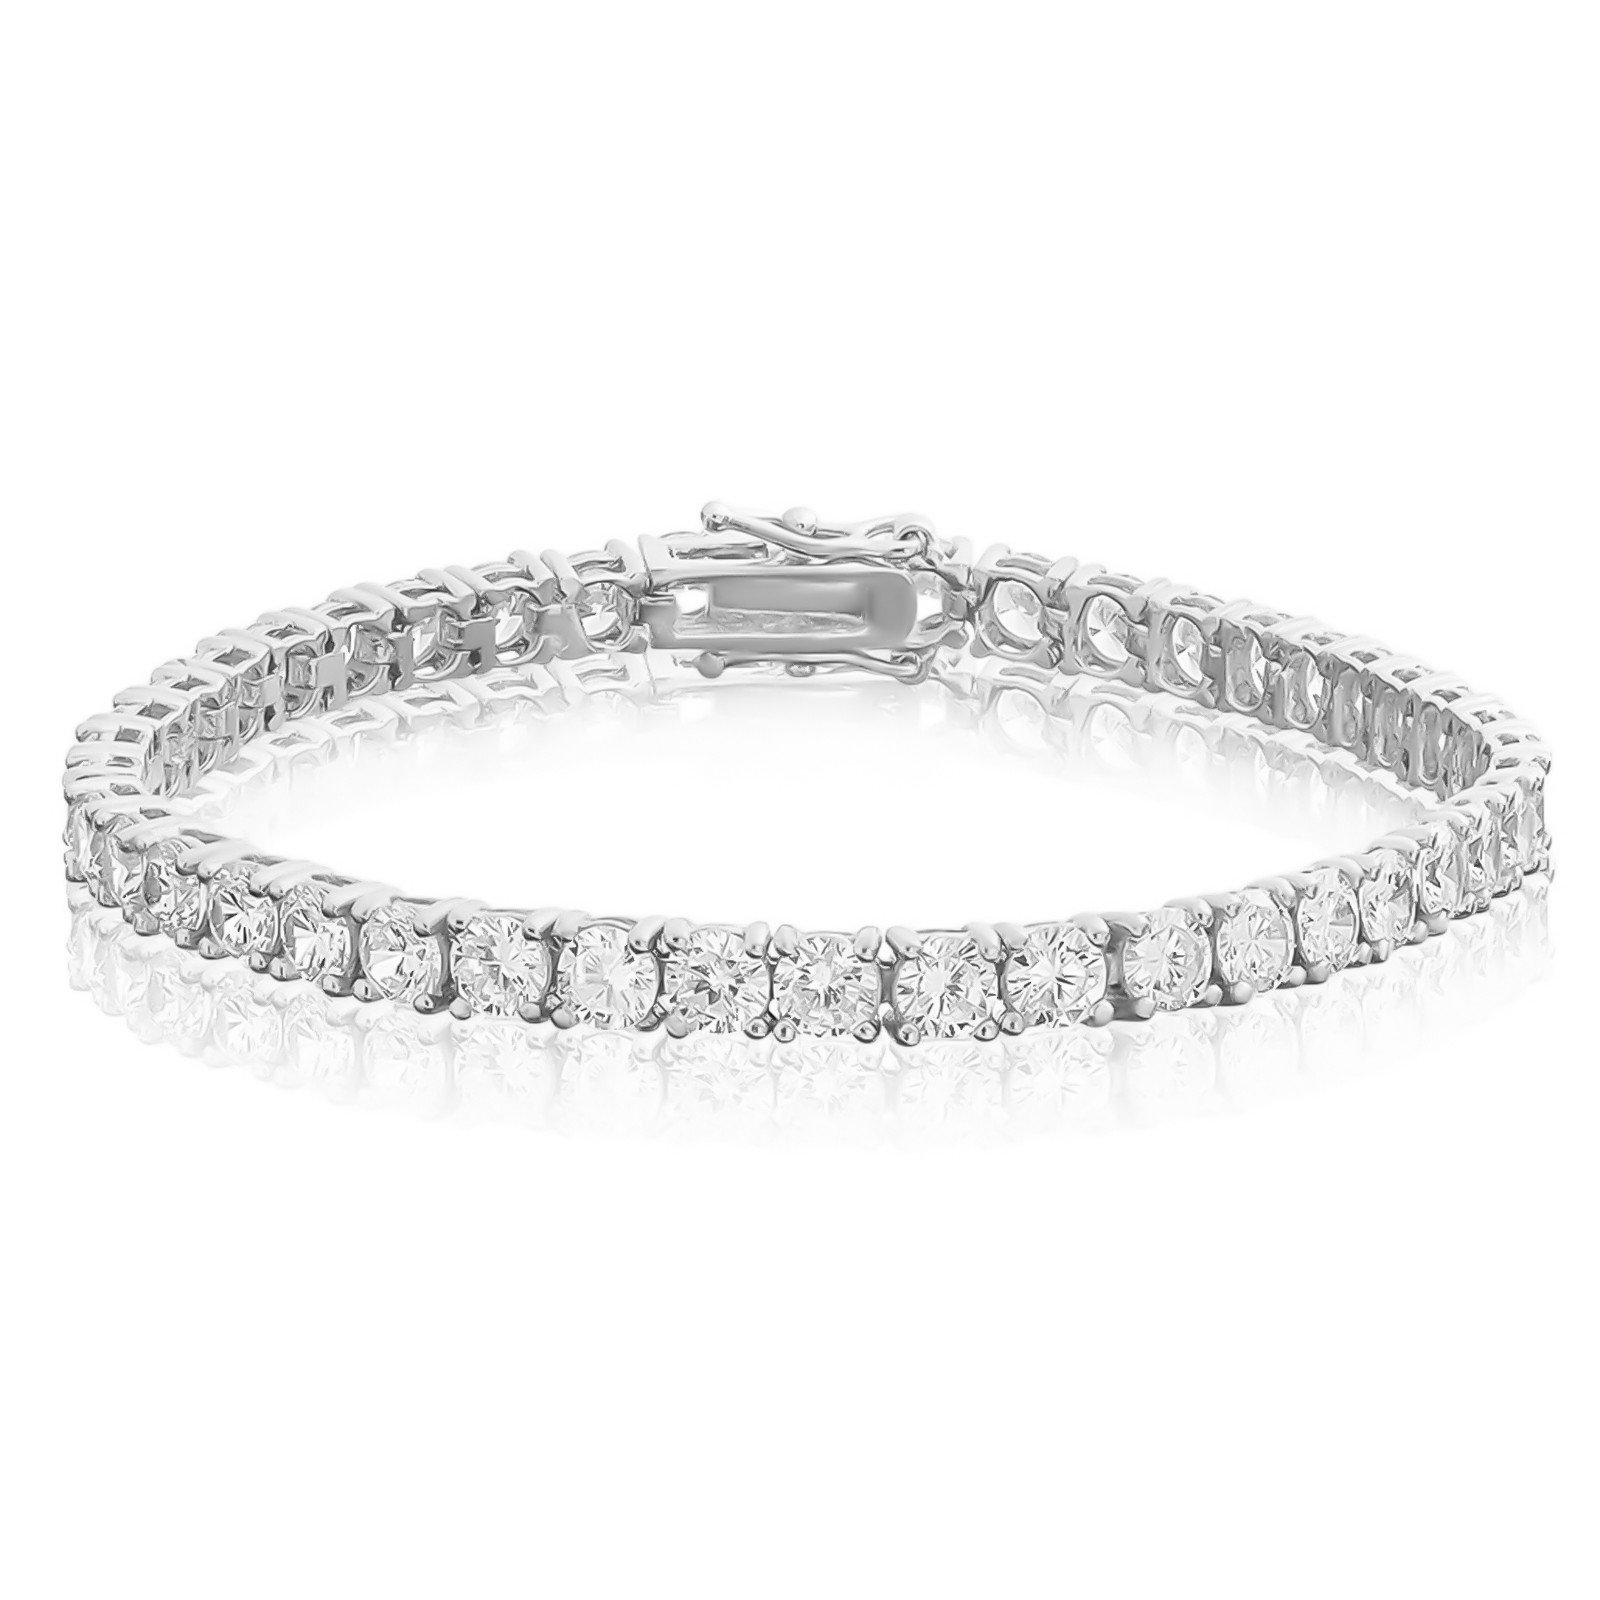 NYC Sterling 4MM Sterling Silver Round Cubic Zirconia Tennis Bracelet, 7.5 Inches (Rhodium-Plated-Silver) by NYC Sterling